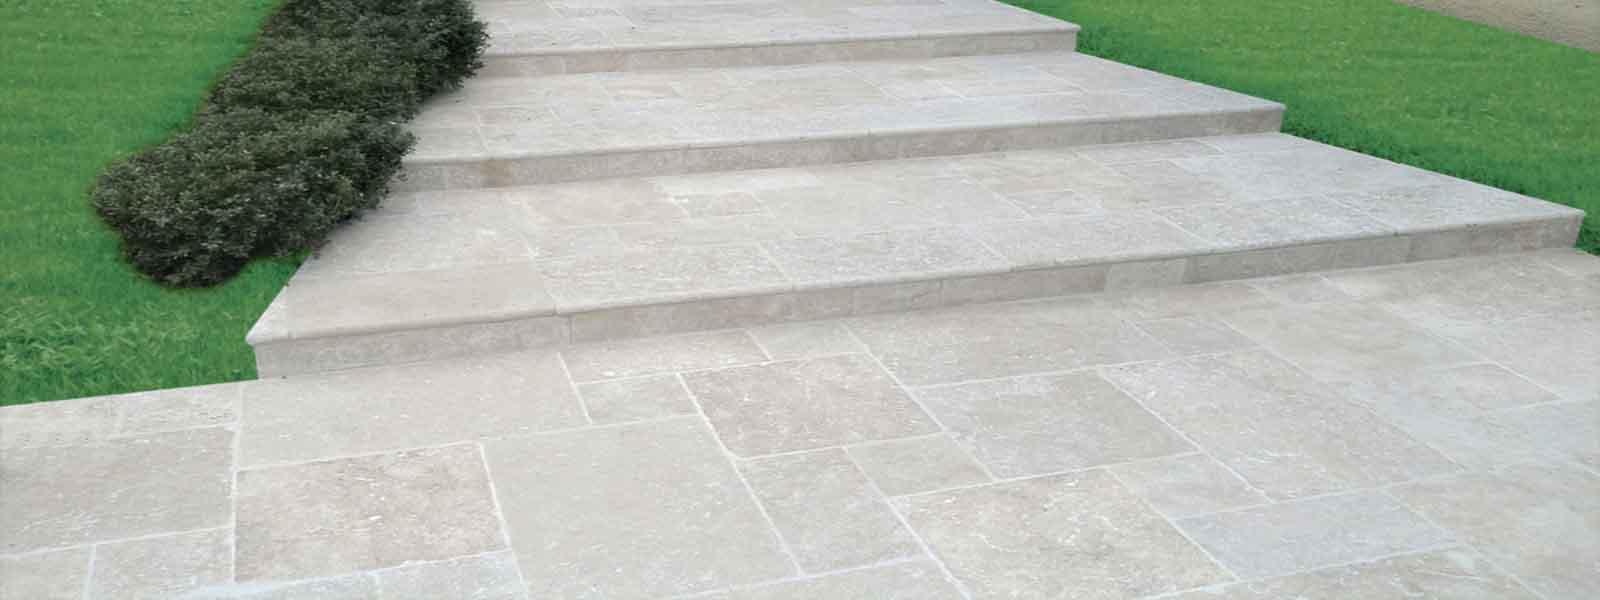 carrelage ext rieur travertin en pierre naturelle pour